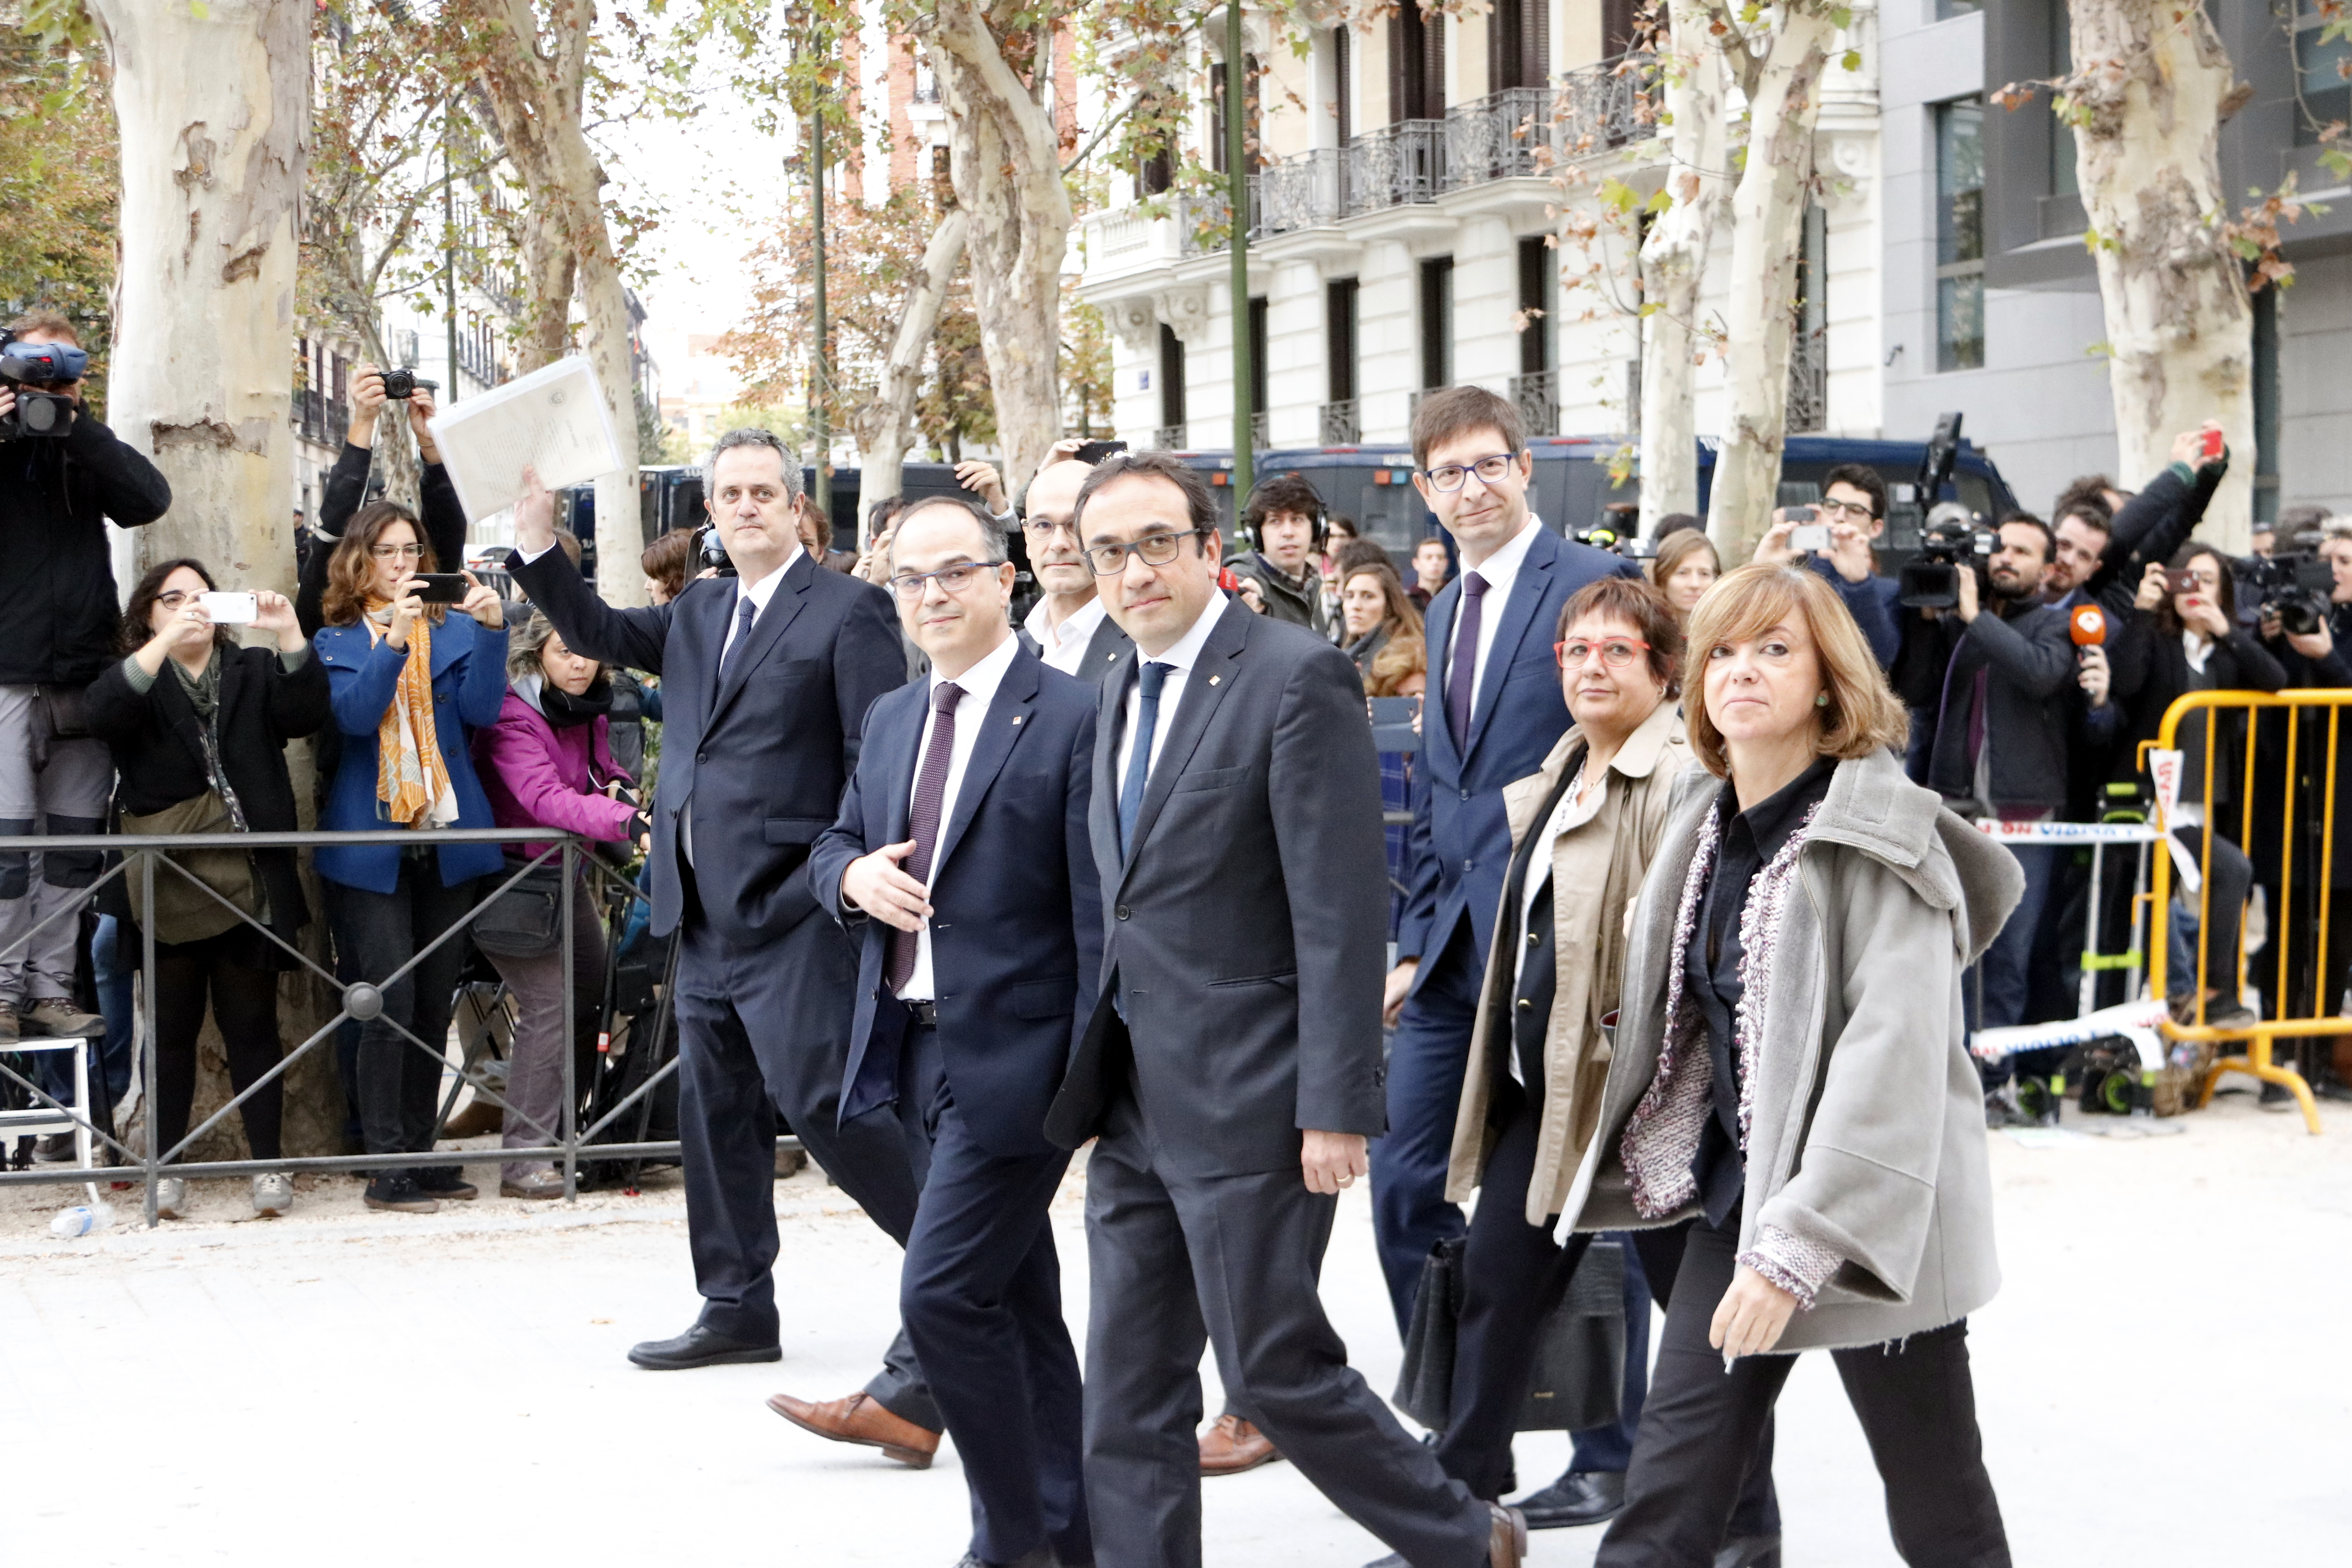 Deposed Catalan ministers arrive at the Spanish National Court (by Rafa Garrido)